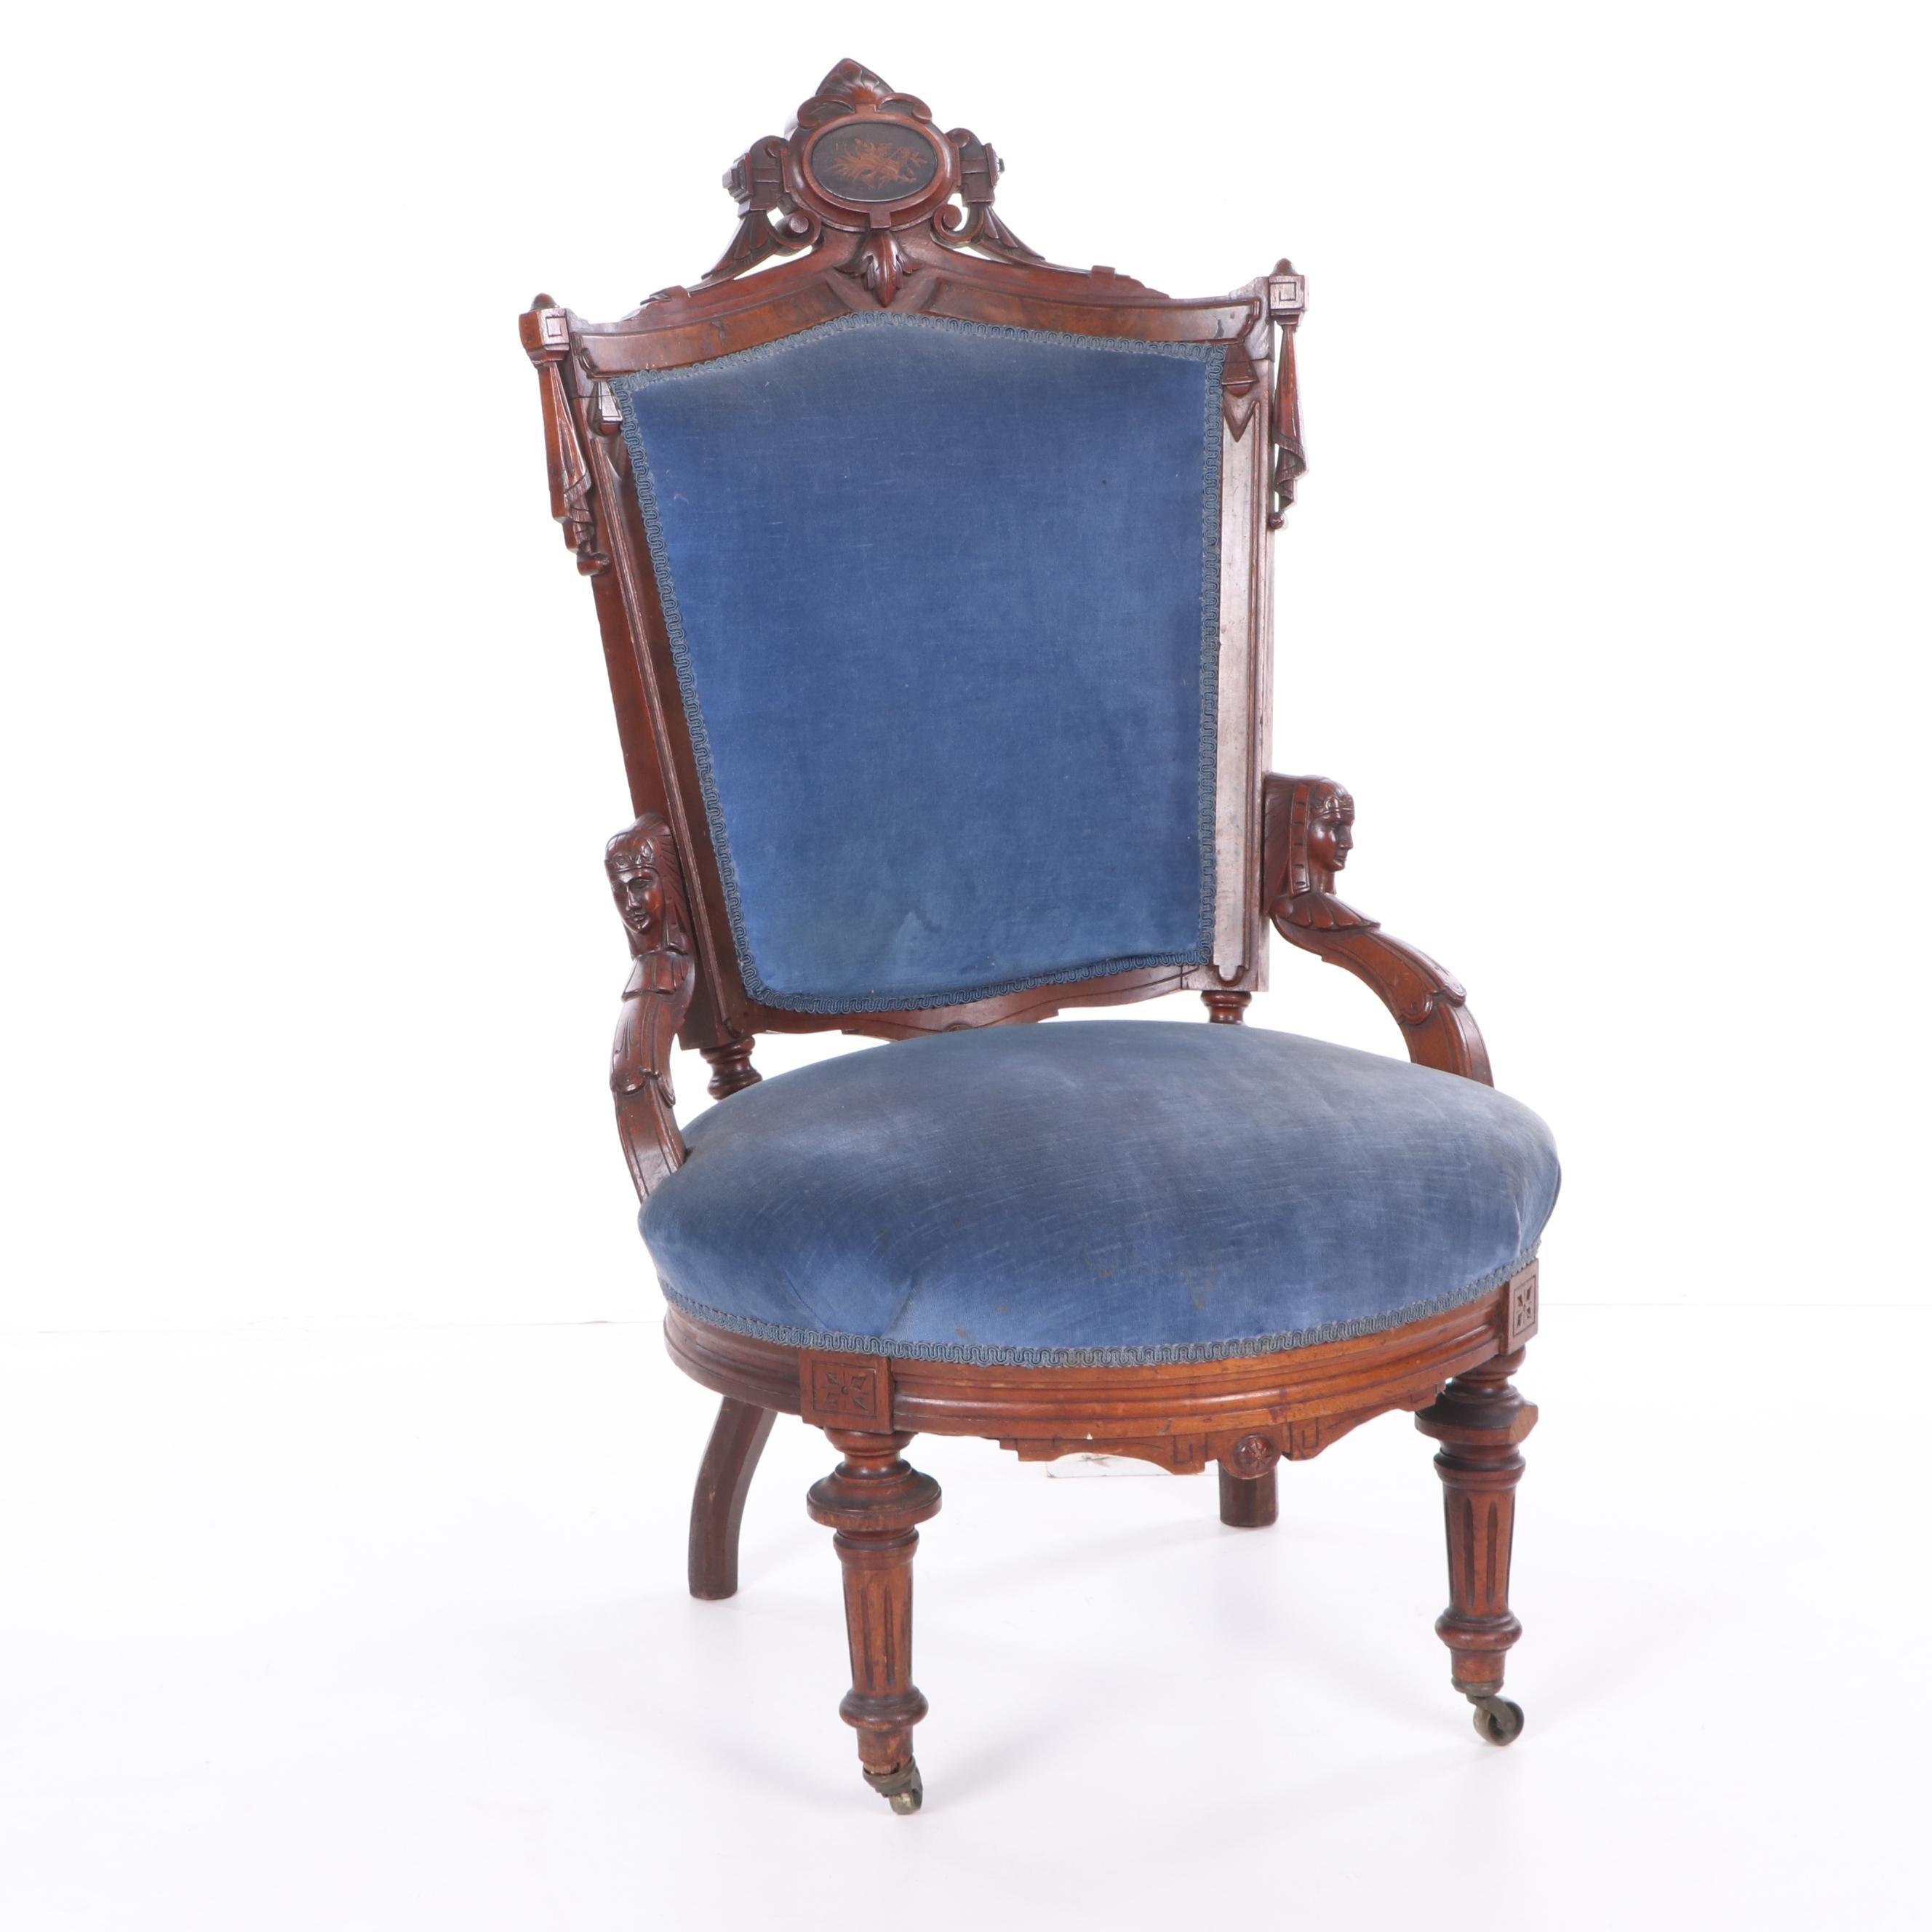 Late Victorian Mahogany Frame Upholstered Parlor Chair on Casters, Late 19th C.